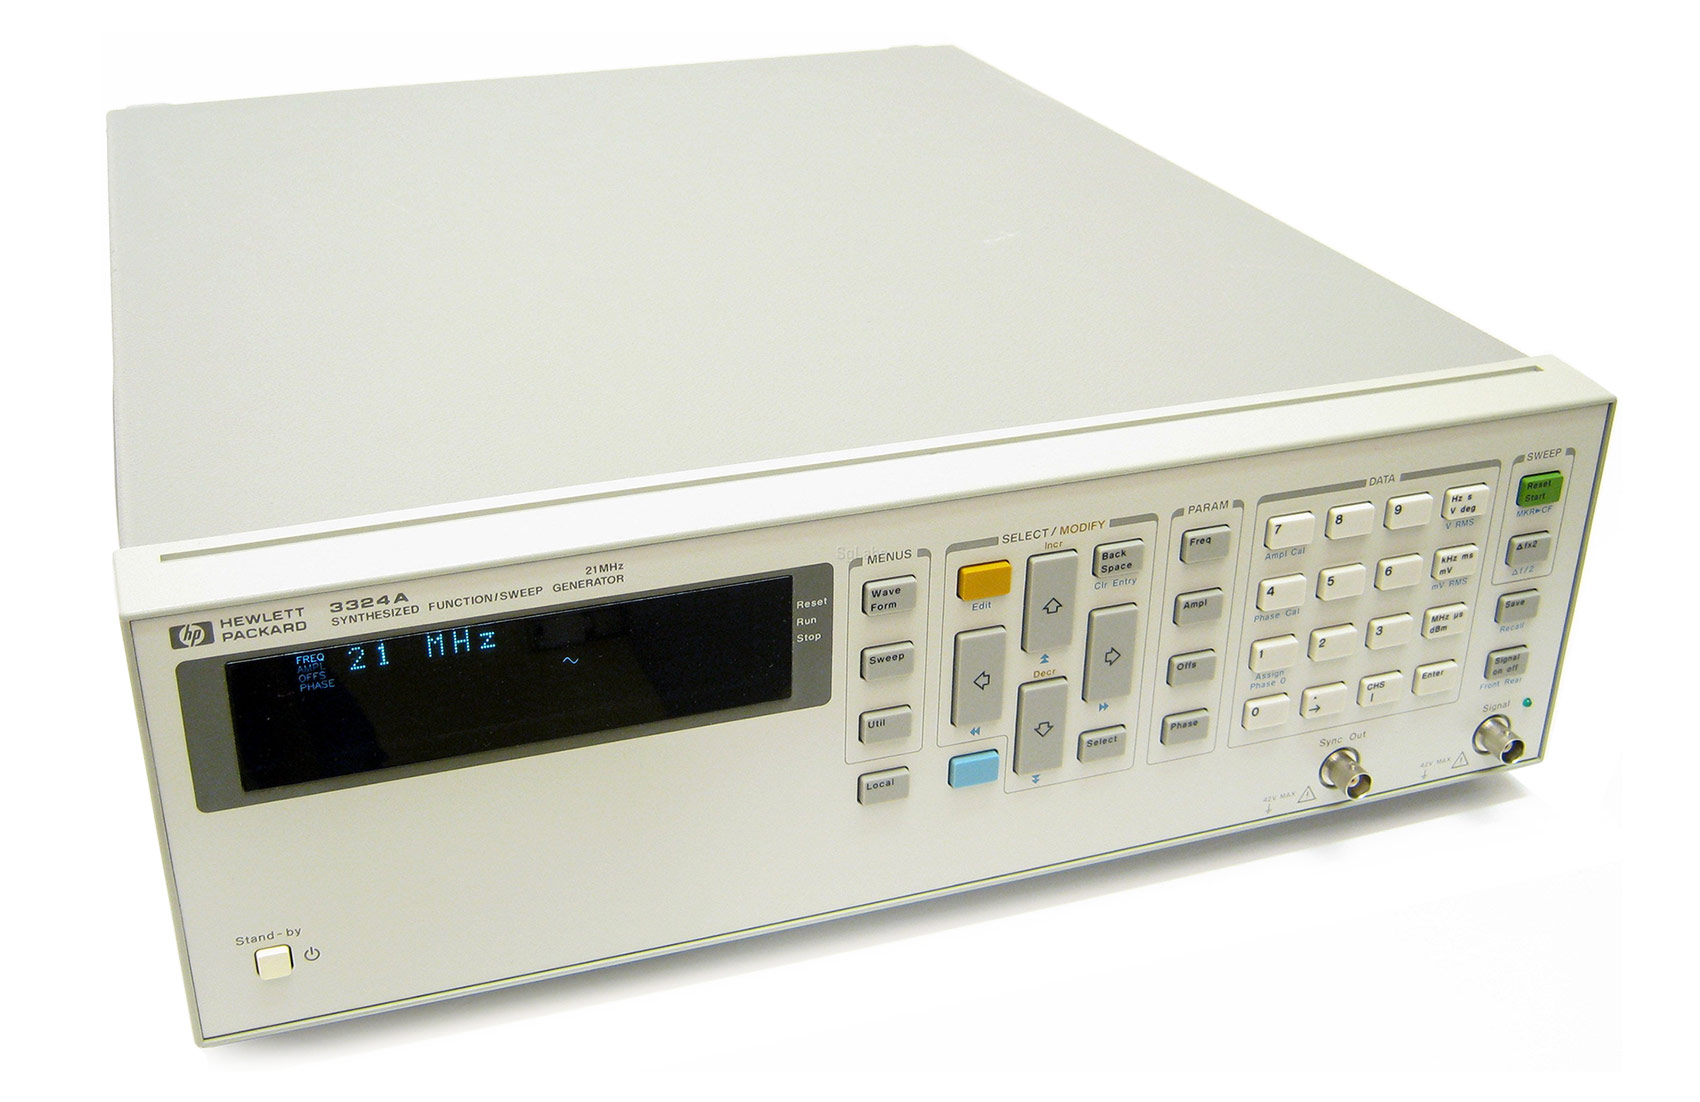 Keysight 3324A Synthesized Function/Sweep Generator